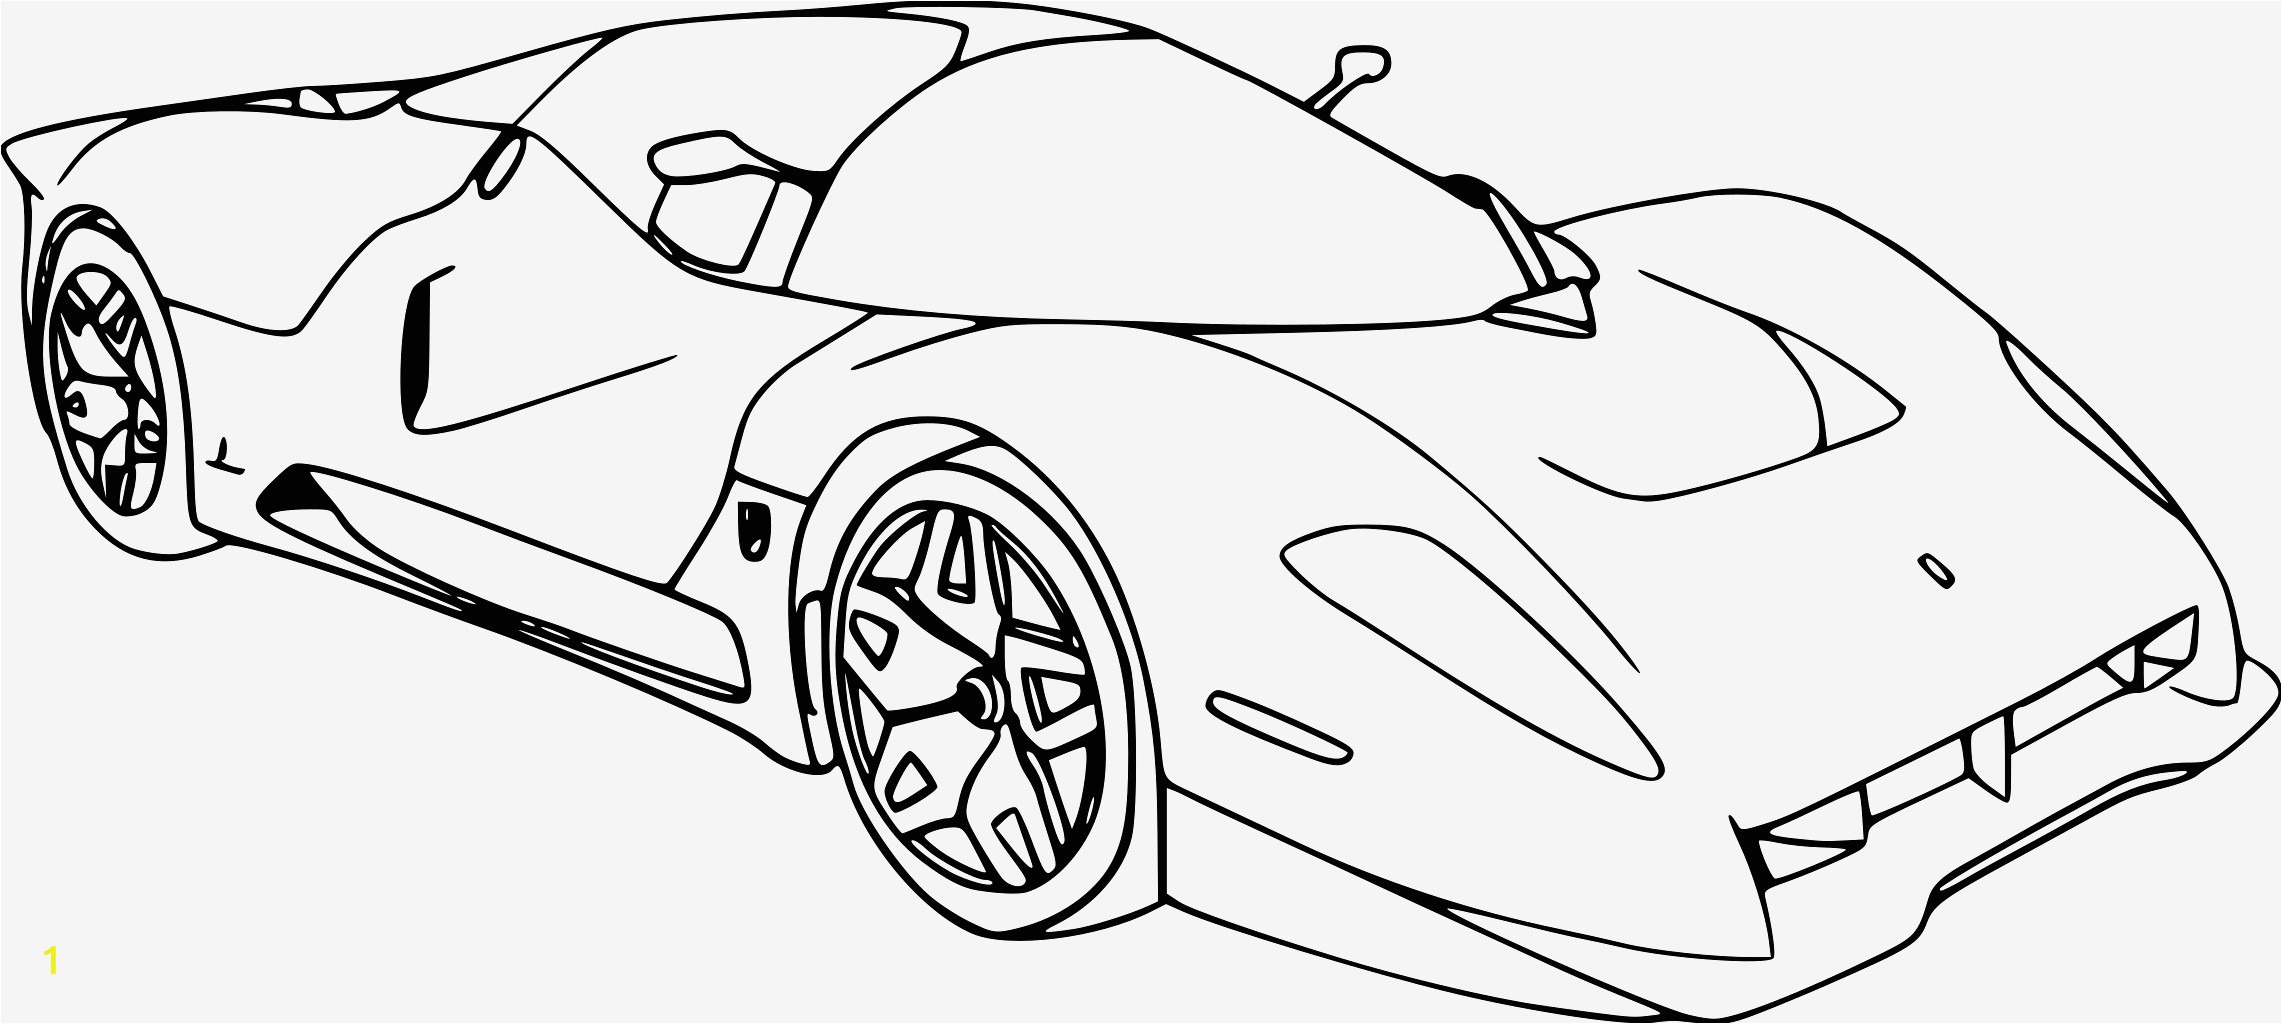 sports car coloring page unique images sports coloring pages princess best cars coloring best coloring of sports car coloring page